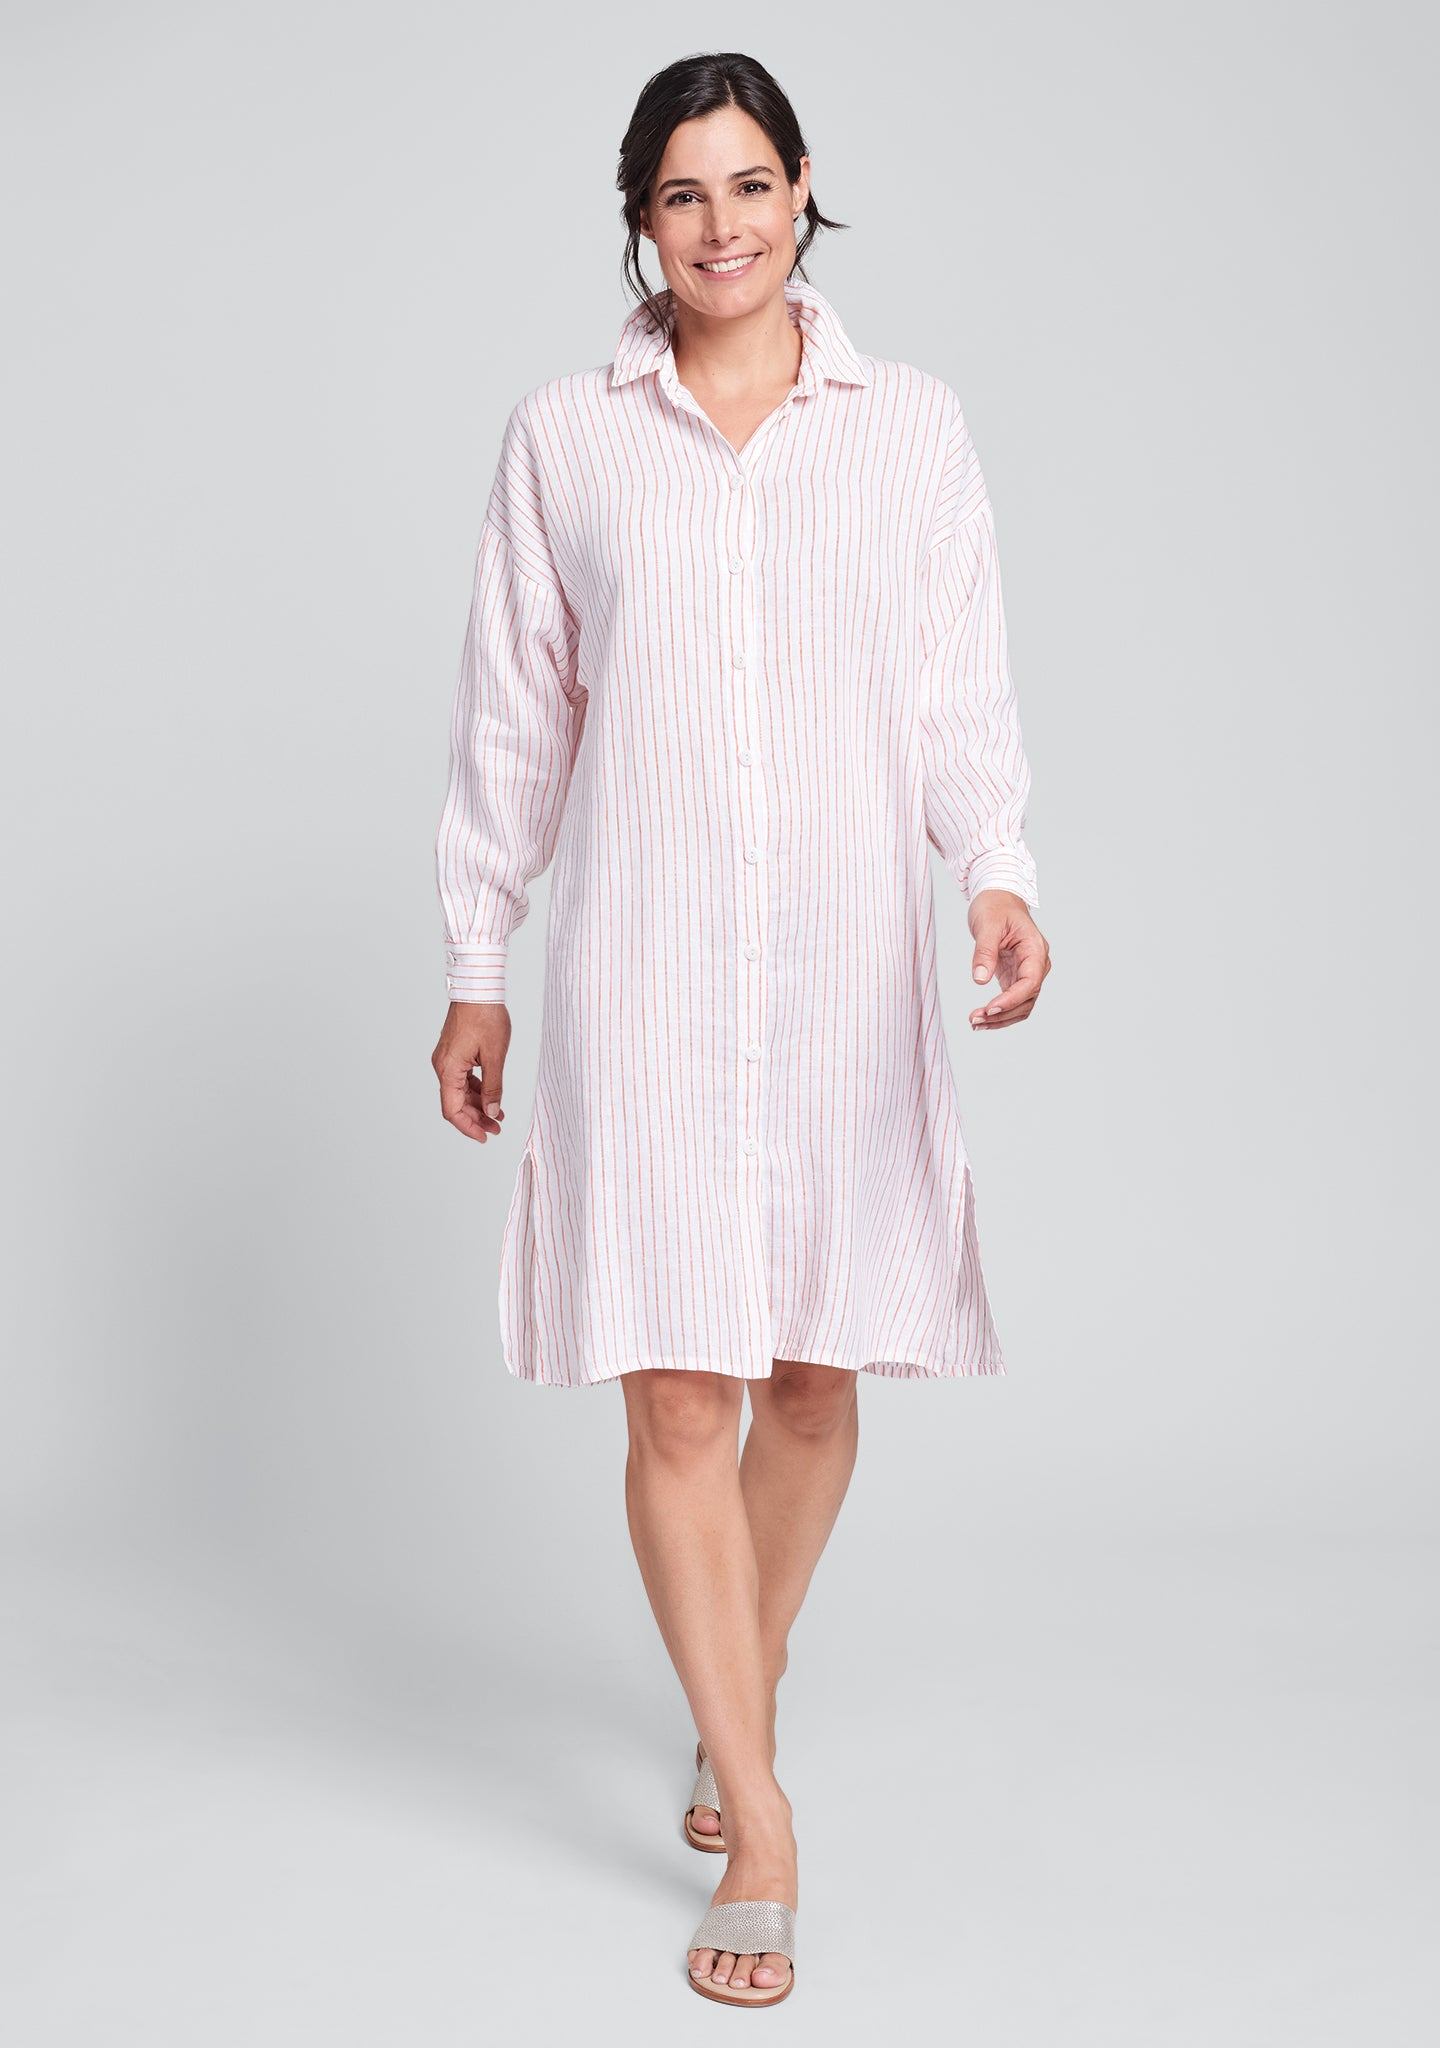 shirtdress linen shirt dress red